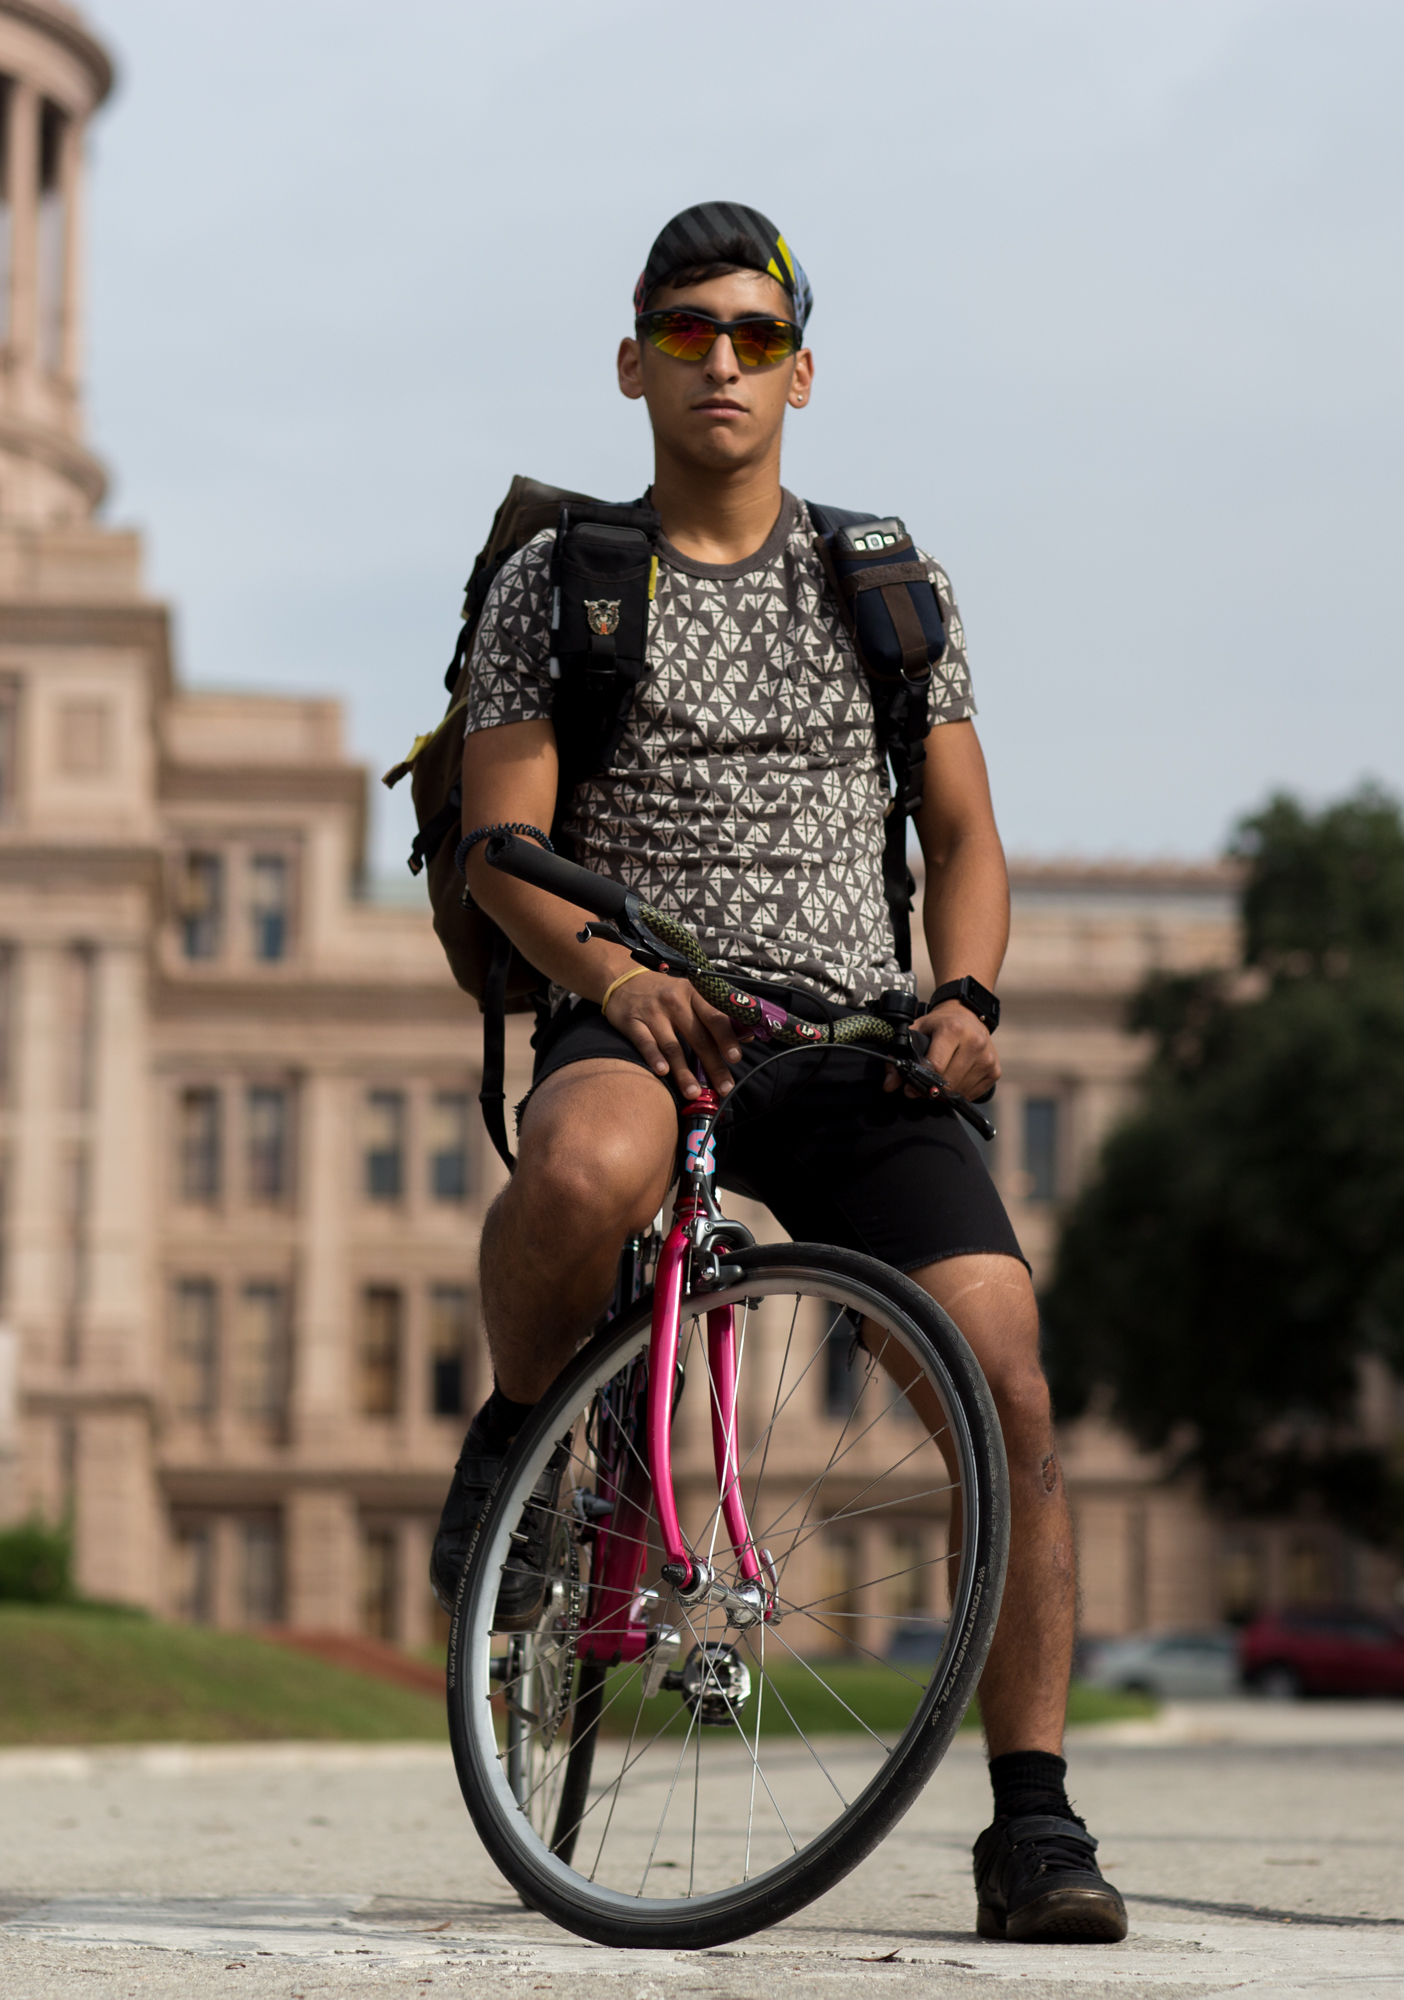 Johnpaul Valenciano has been doing bike courier work around Austin for over three years and currently delivers sensitive documents for local government officials and businesses.Downtown Austin, November 10, 2016.